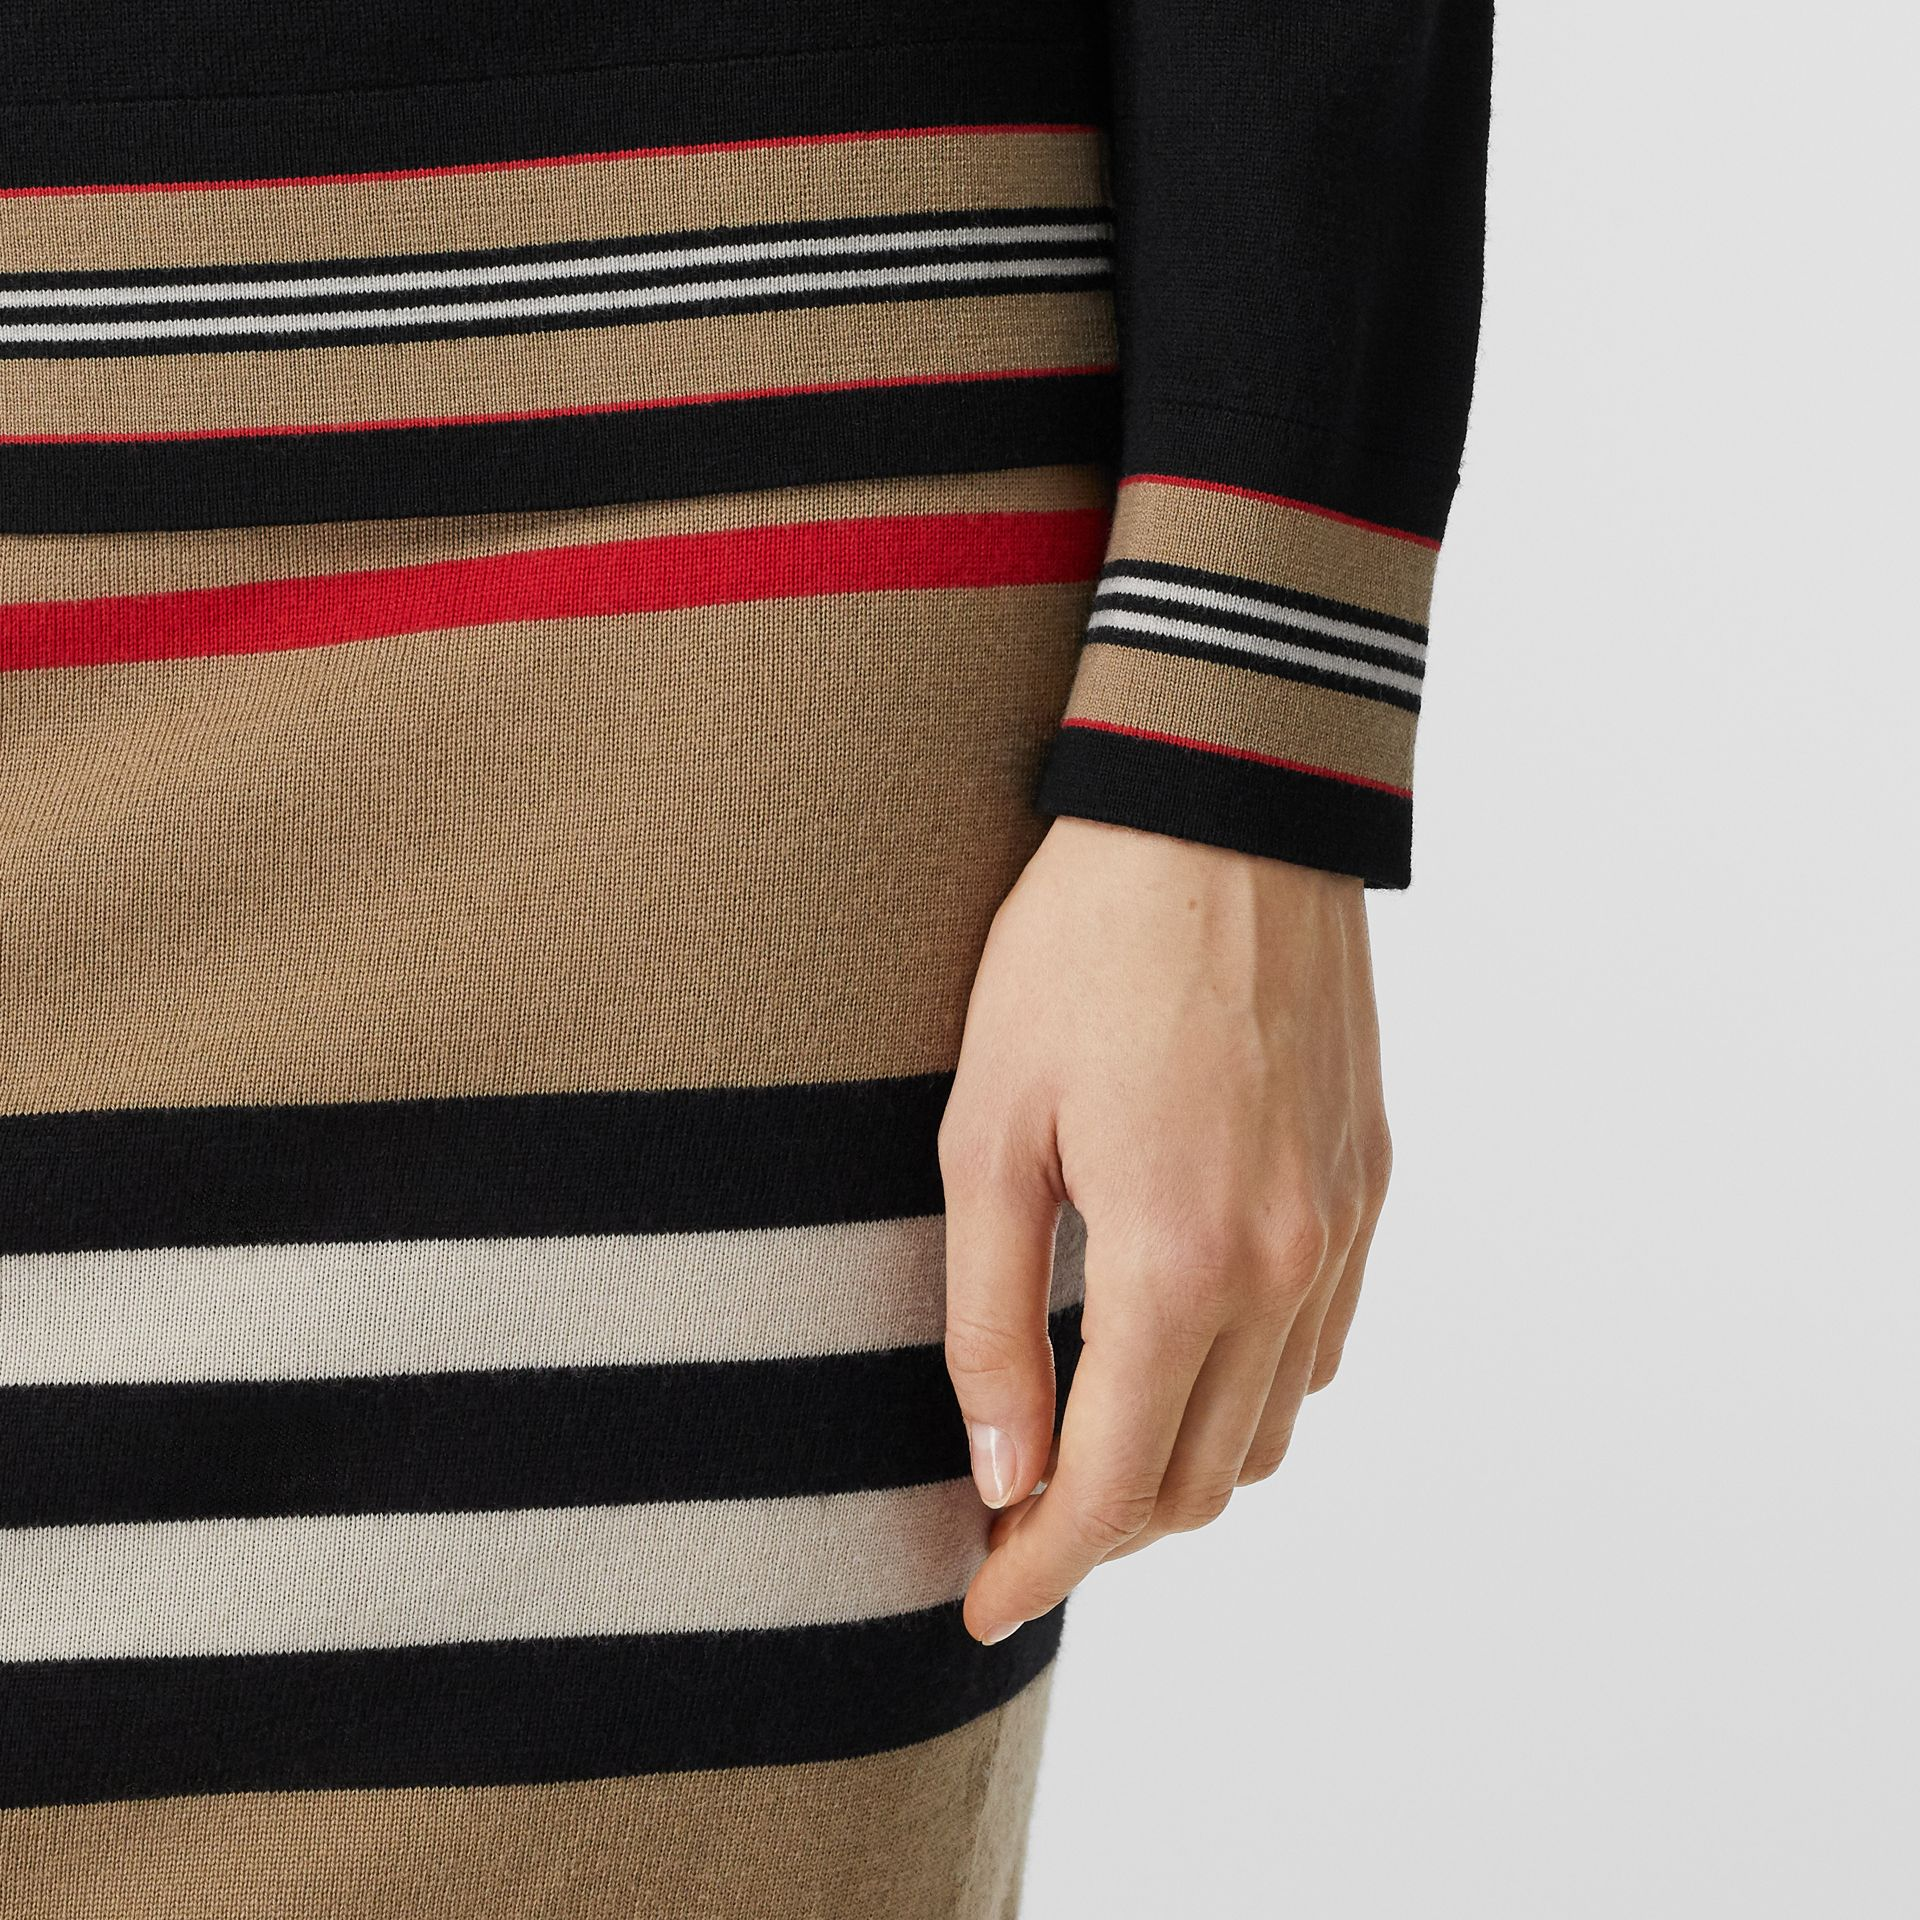 Icon Stripe Detail Merino Wool Sweater in Black - Women | Burberry - gallery image 1